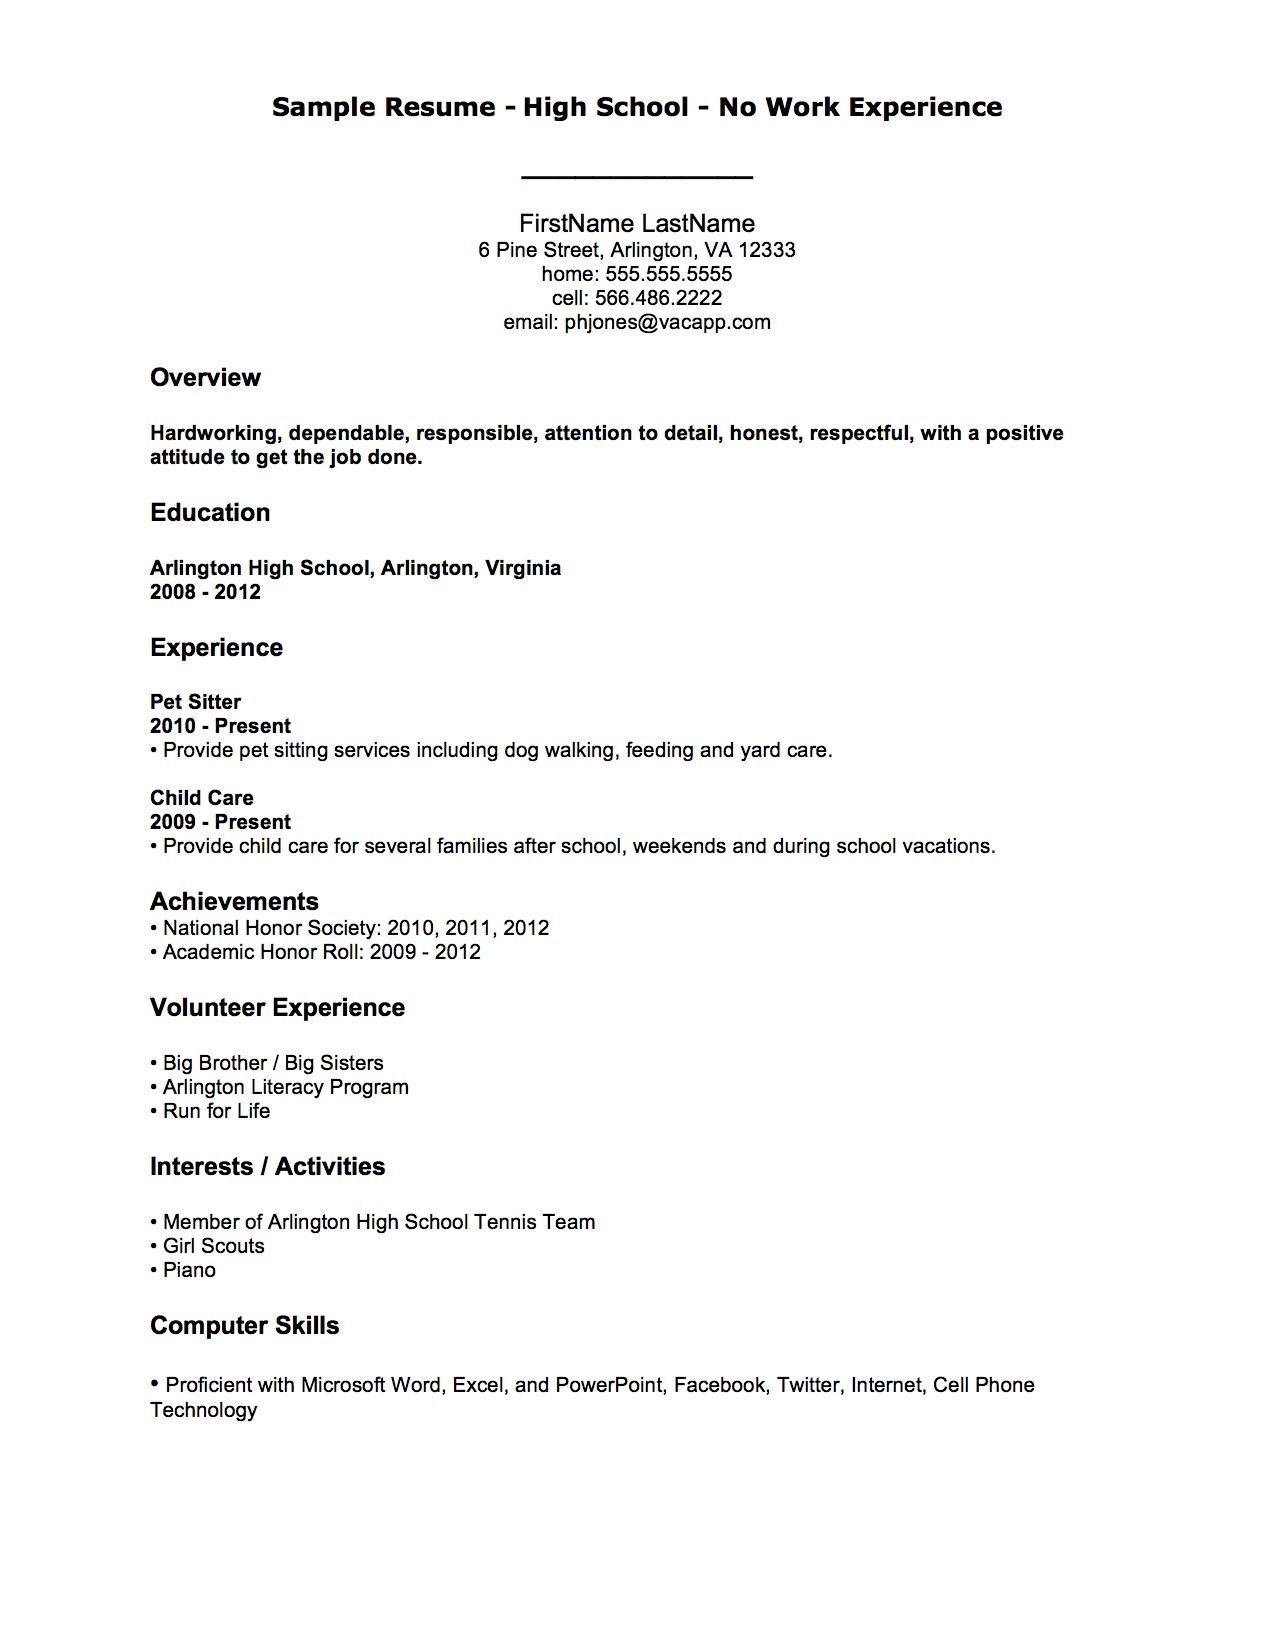 Resume Examples With No Job Experience 1 Sample For College Students